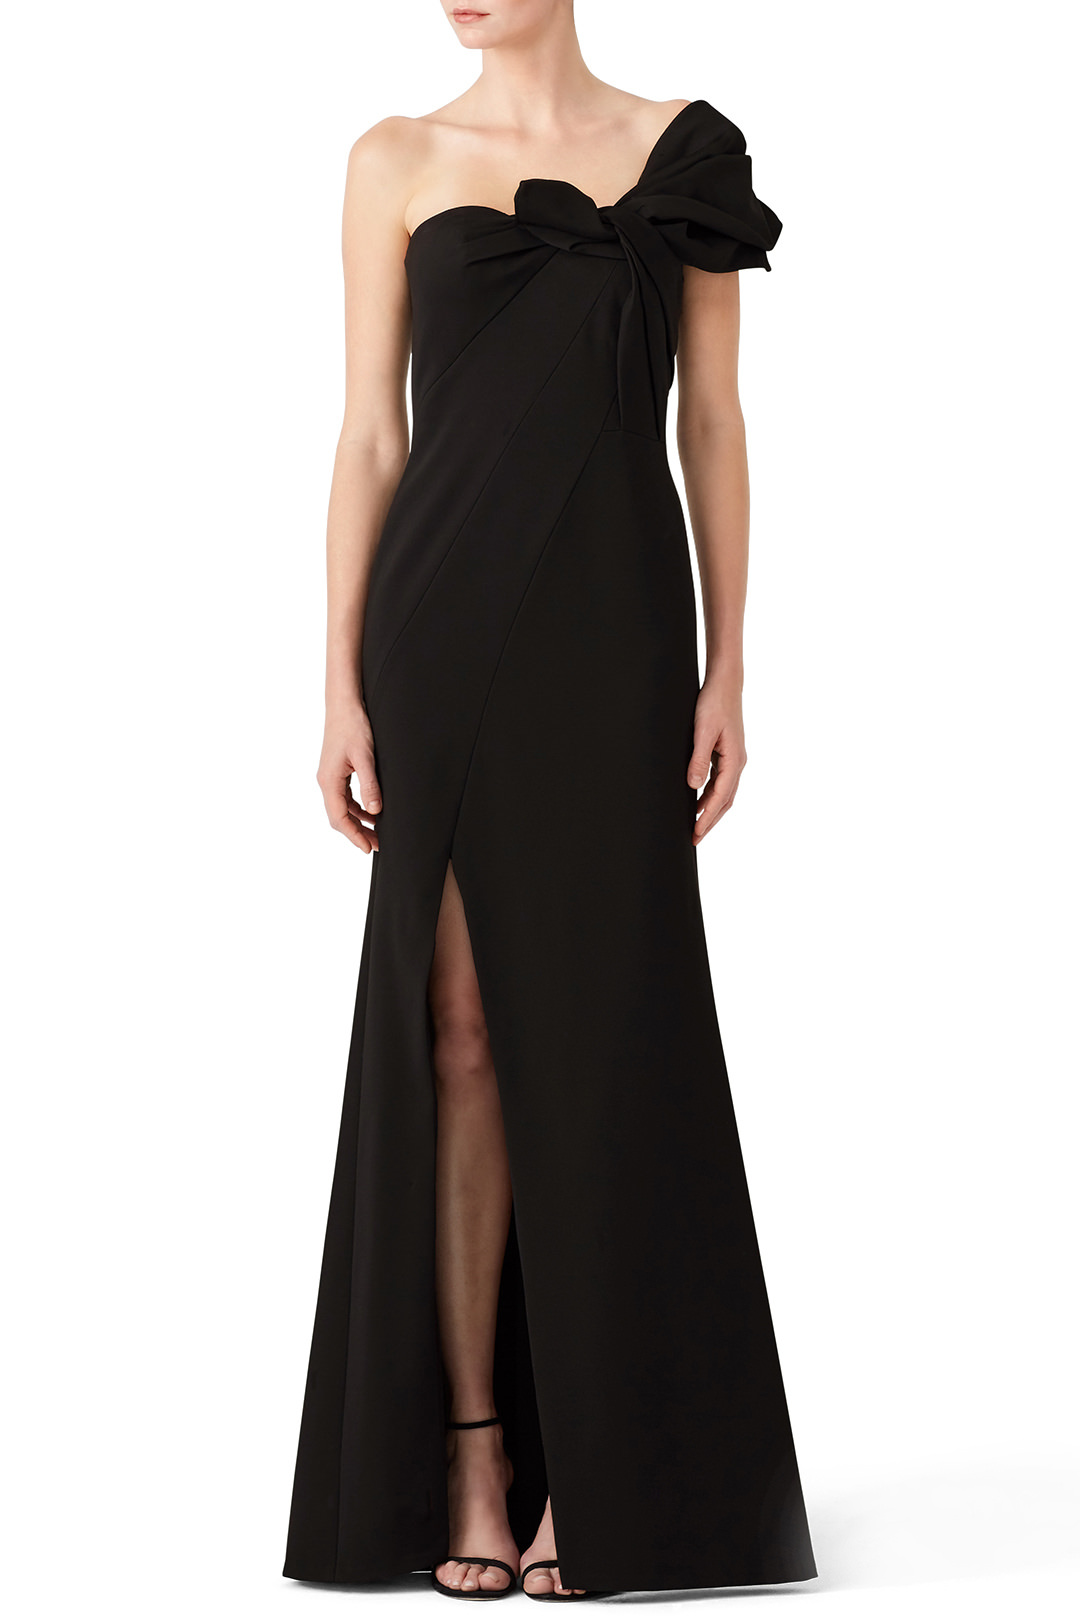 Aiden Mattox Black Bow Crepe Gown - This is the stunning black gown we all hope to wear.